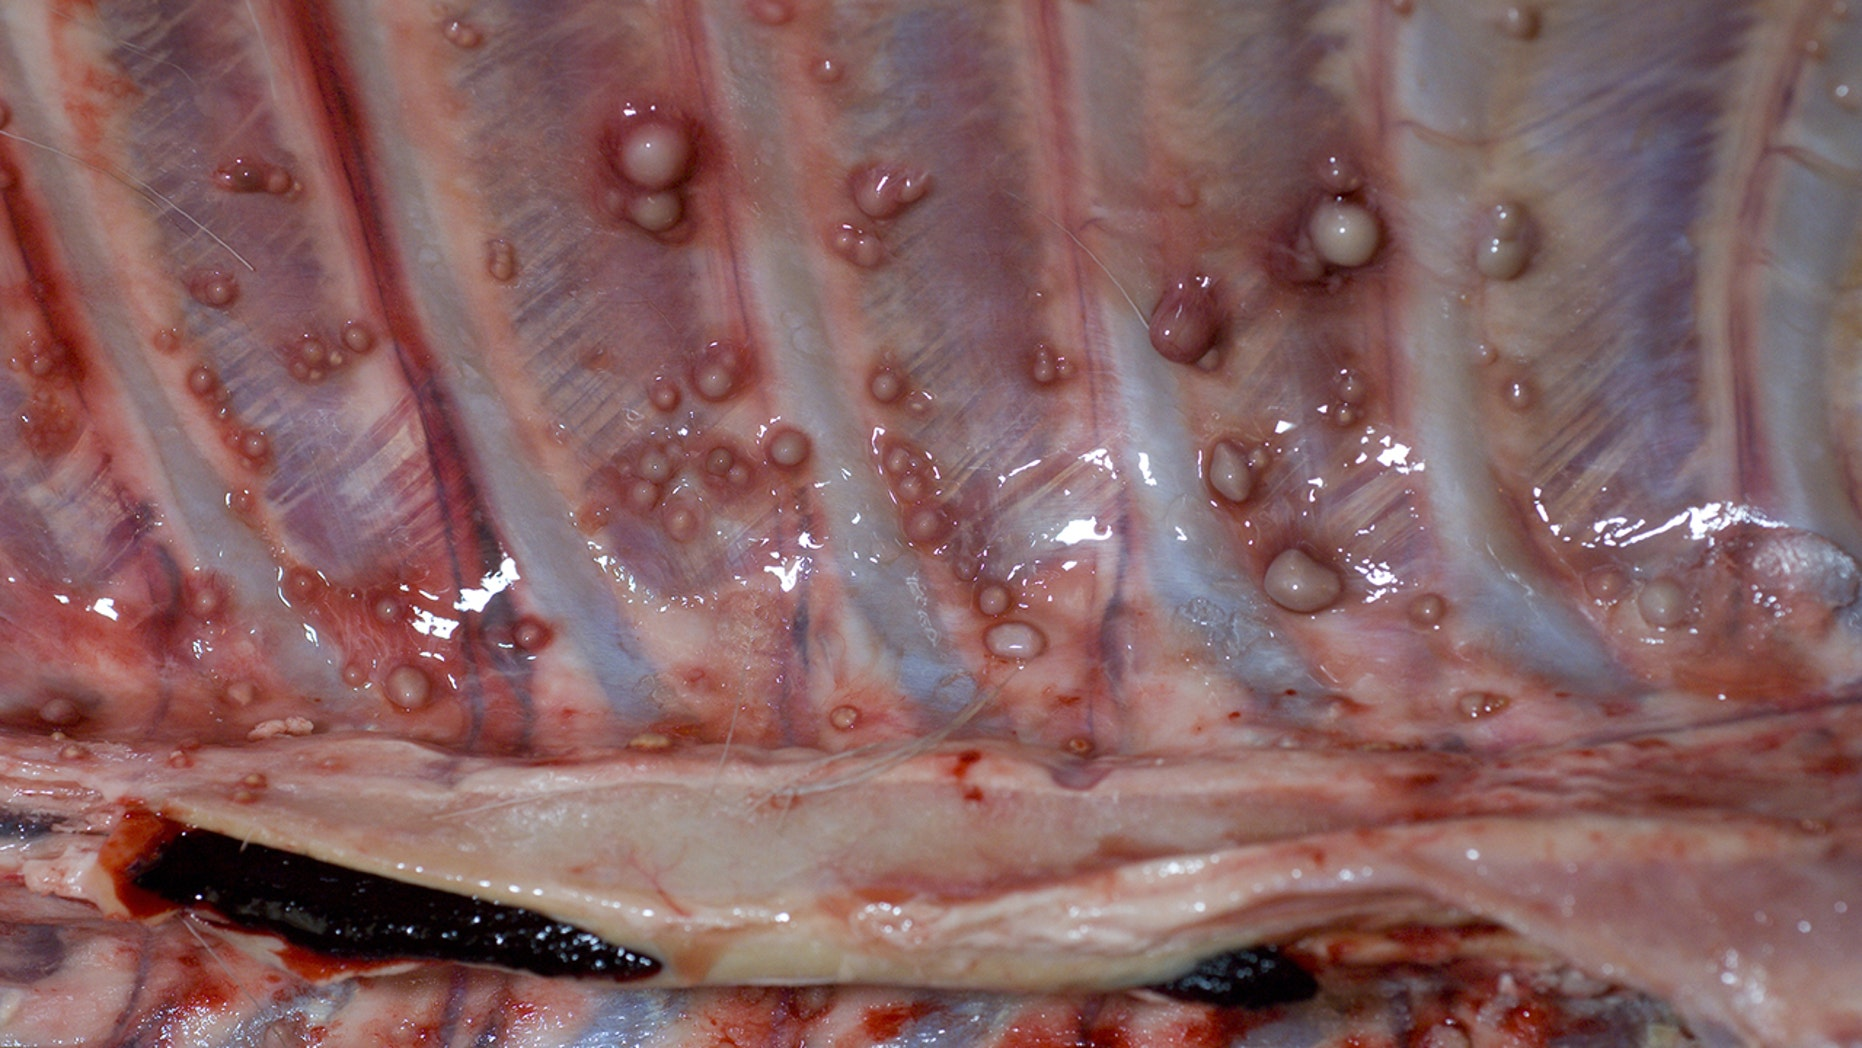 The rib cage of a deer infected with bovine tuberculosis.